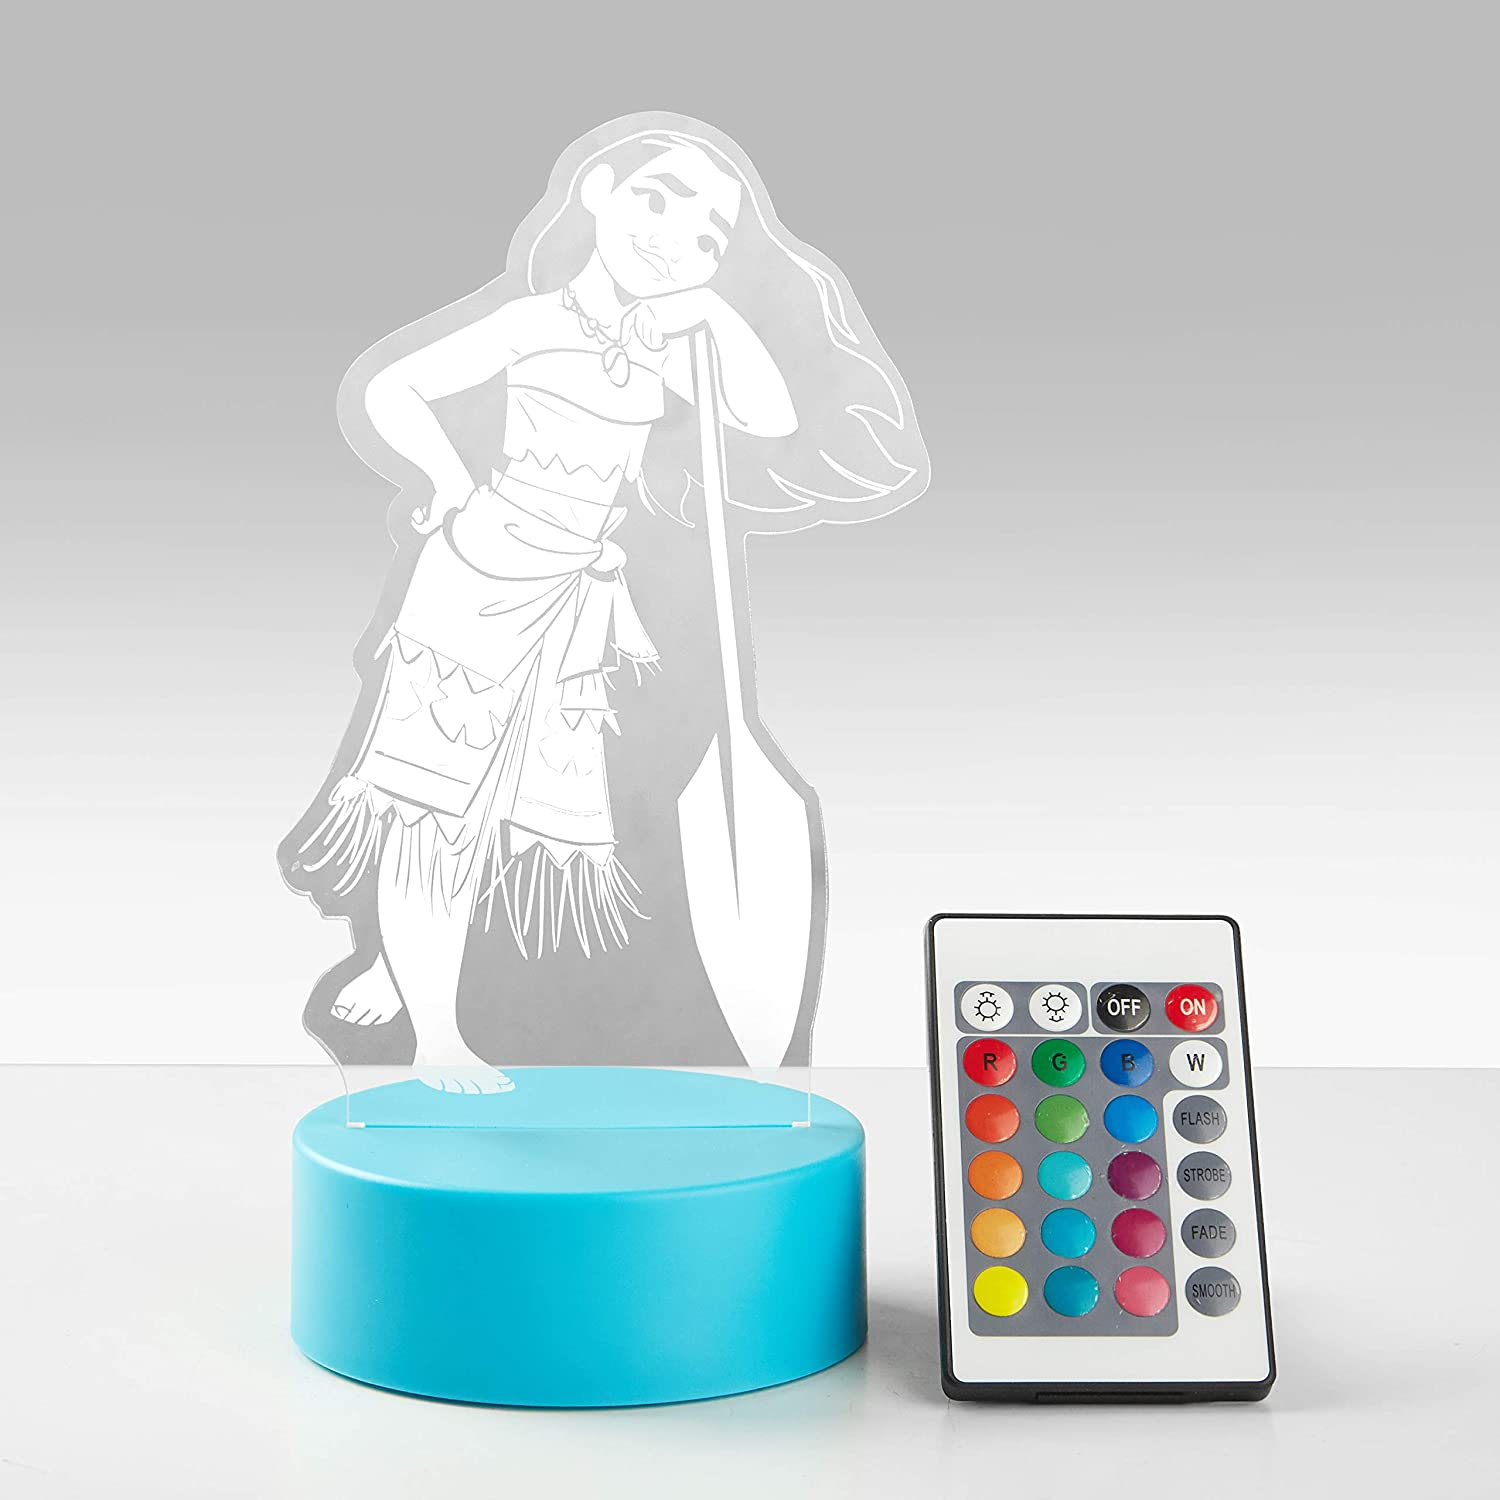 Disney Moana Acrylic LED Table Lamp with Multi-Color Changing Lights, Controller Included